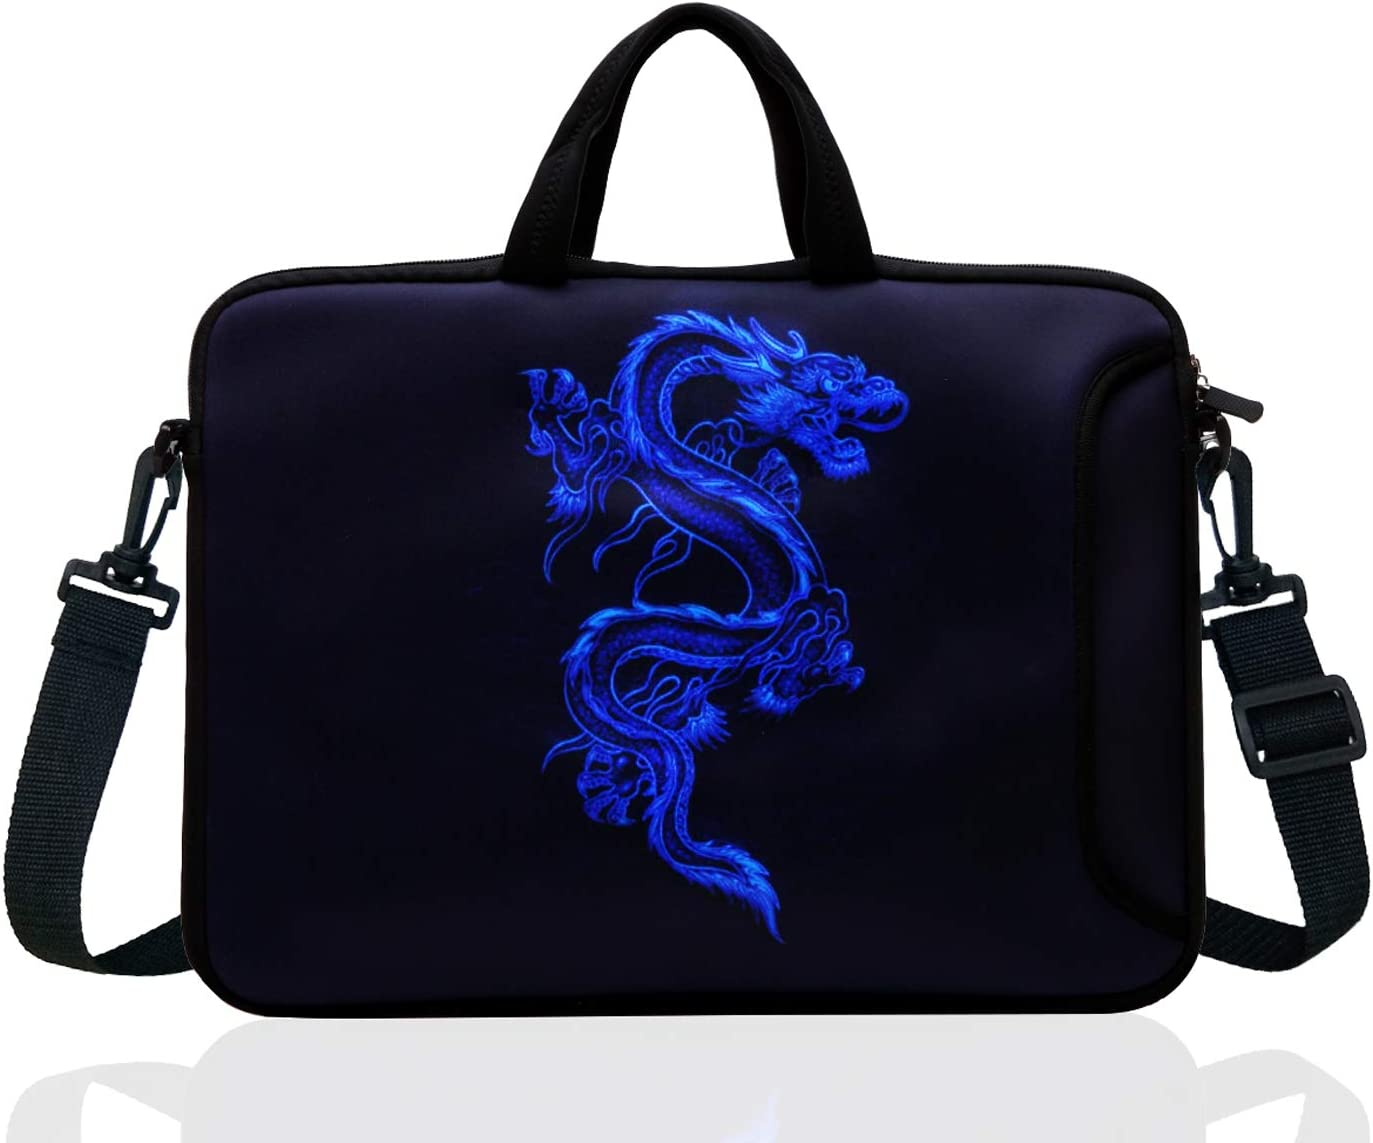 "TAIDY 17 to 17.3-Inch Neoprene Laptop Shoulder Bag Sleeve Case for 17""- 17.3"" MacBook/Ultrabook/HP/Acer/Asus/Lenovo (Blue Dragon)"